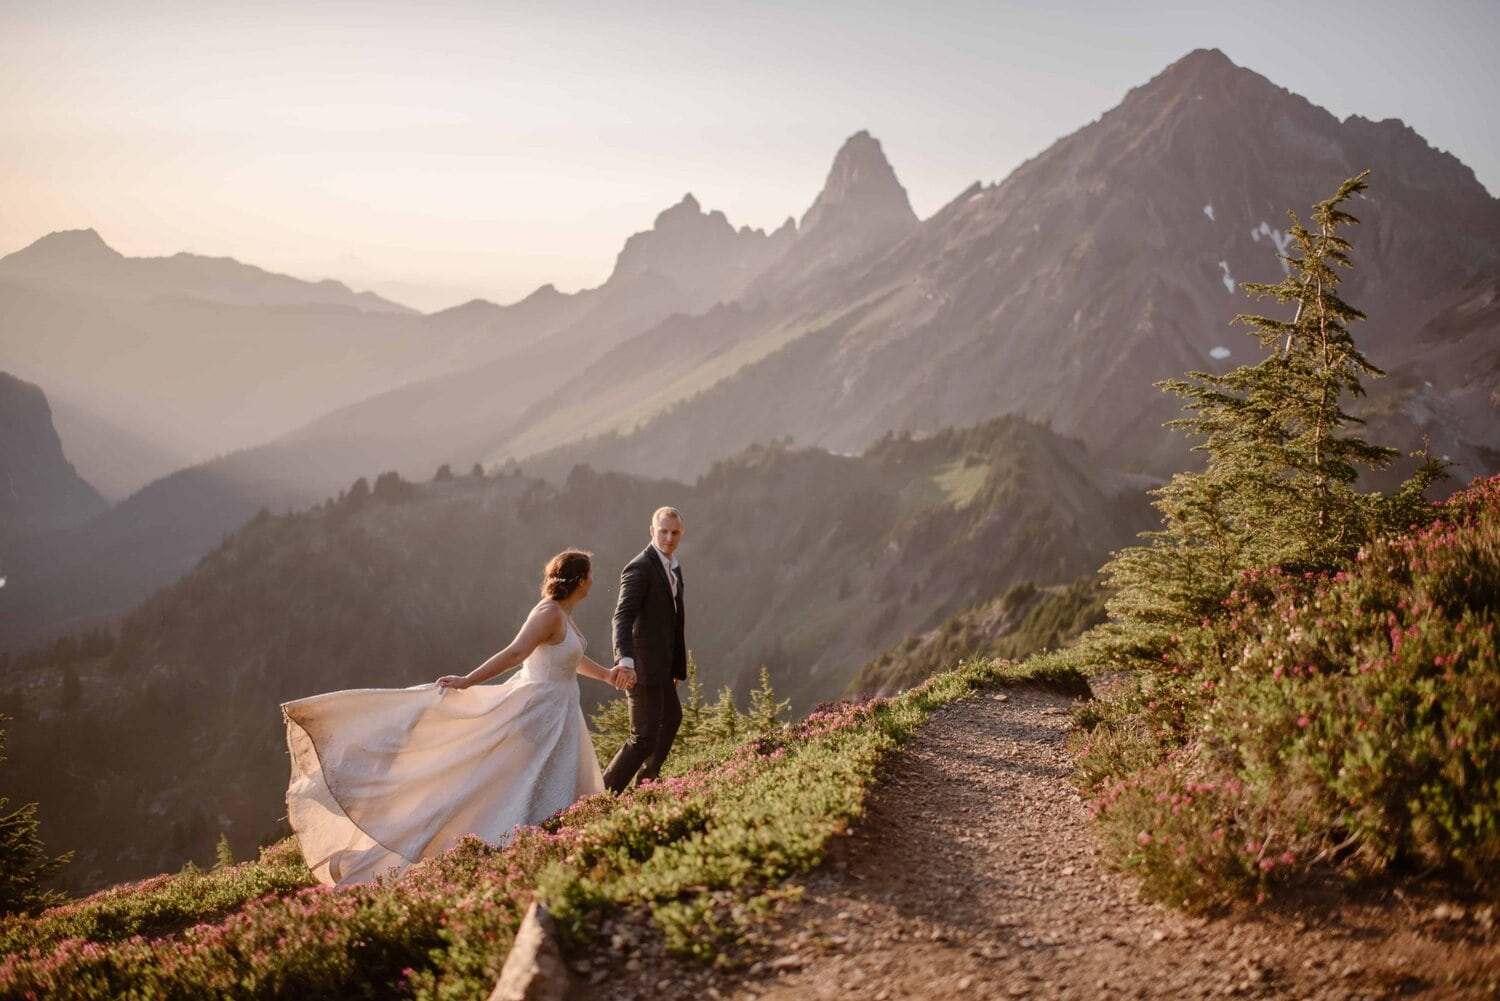 Bride and groom hold hands while walking up the mountains.